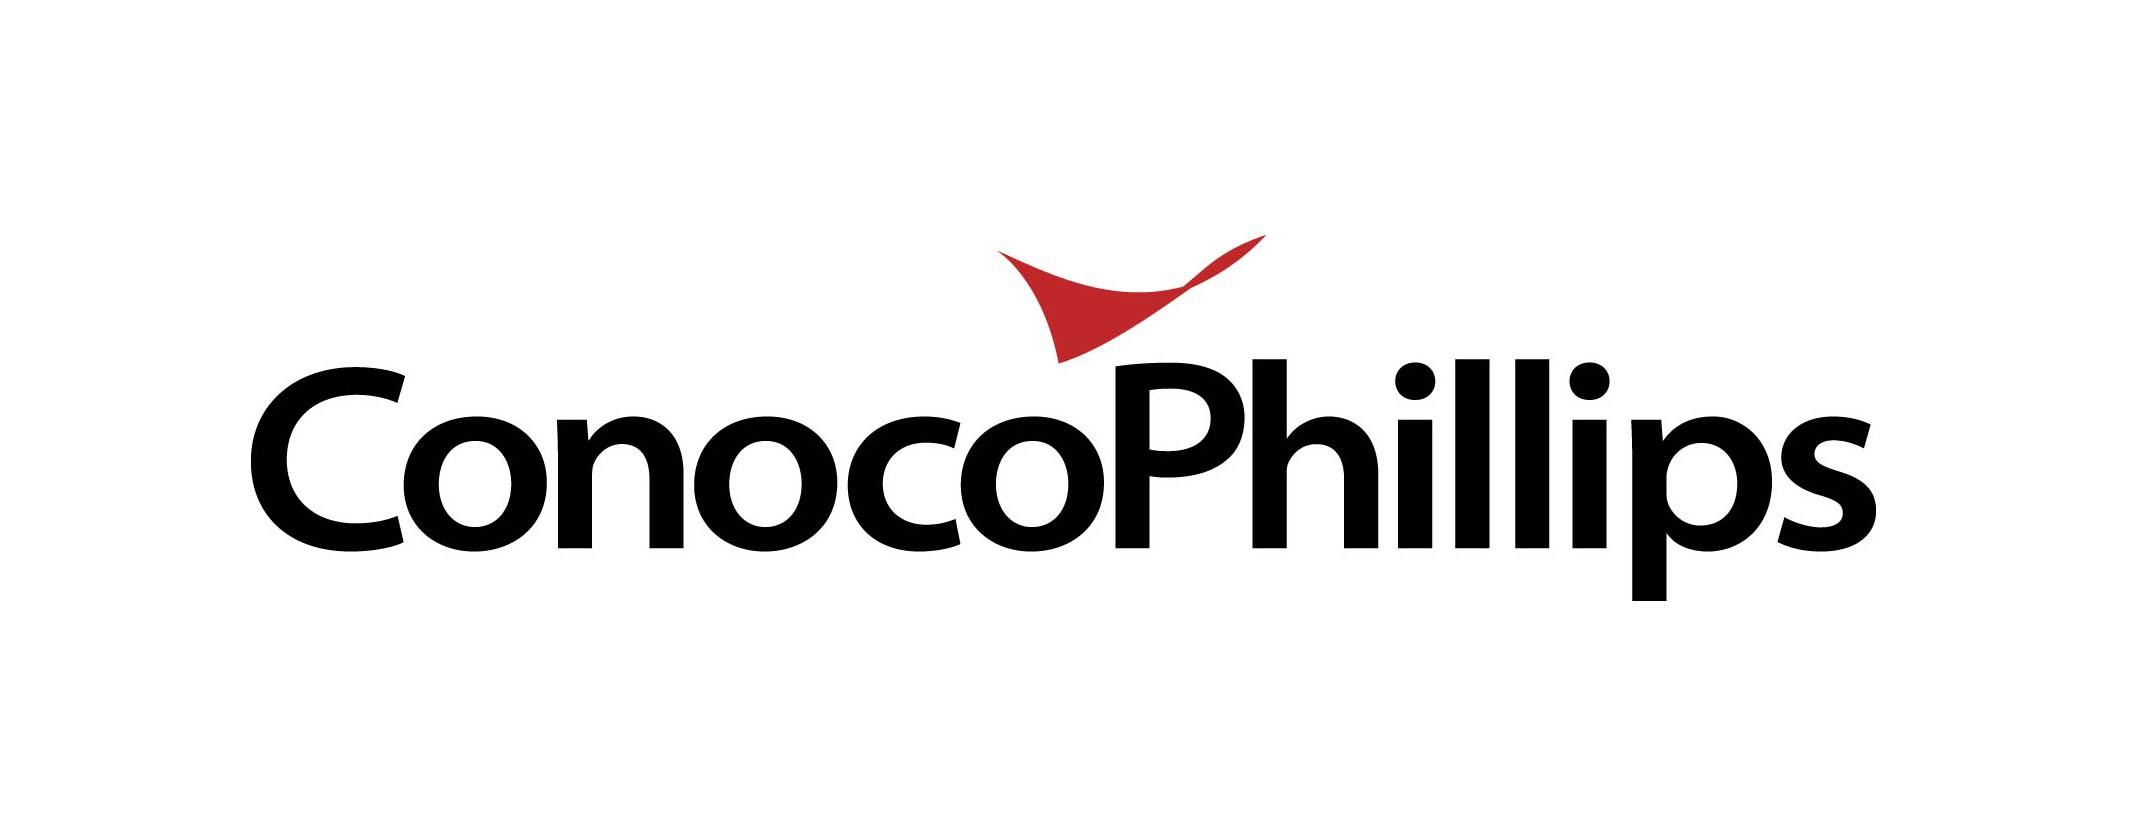 Image result for conocophillips logo